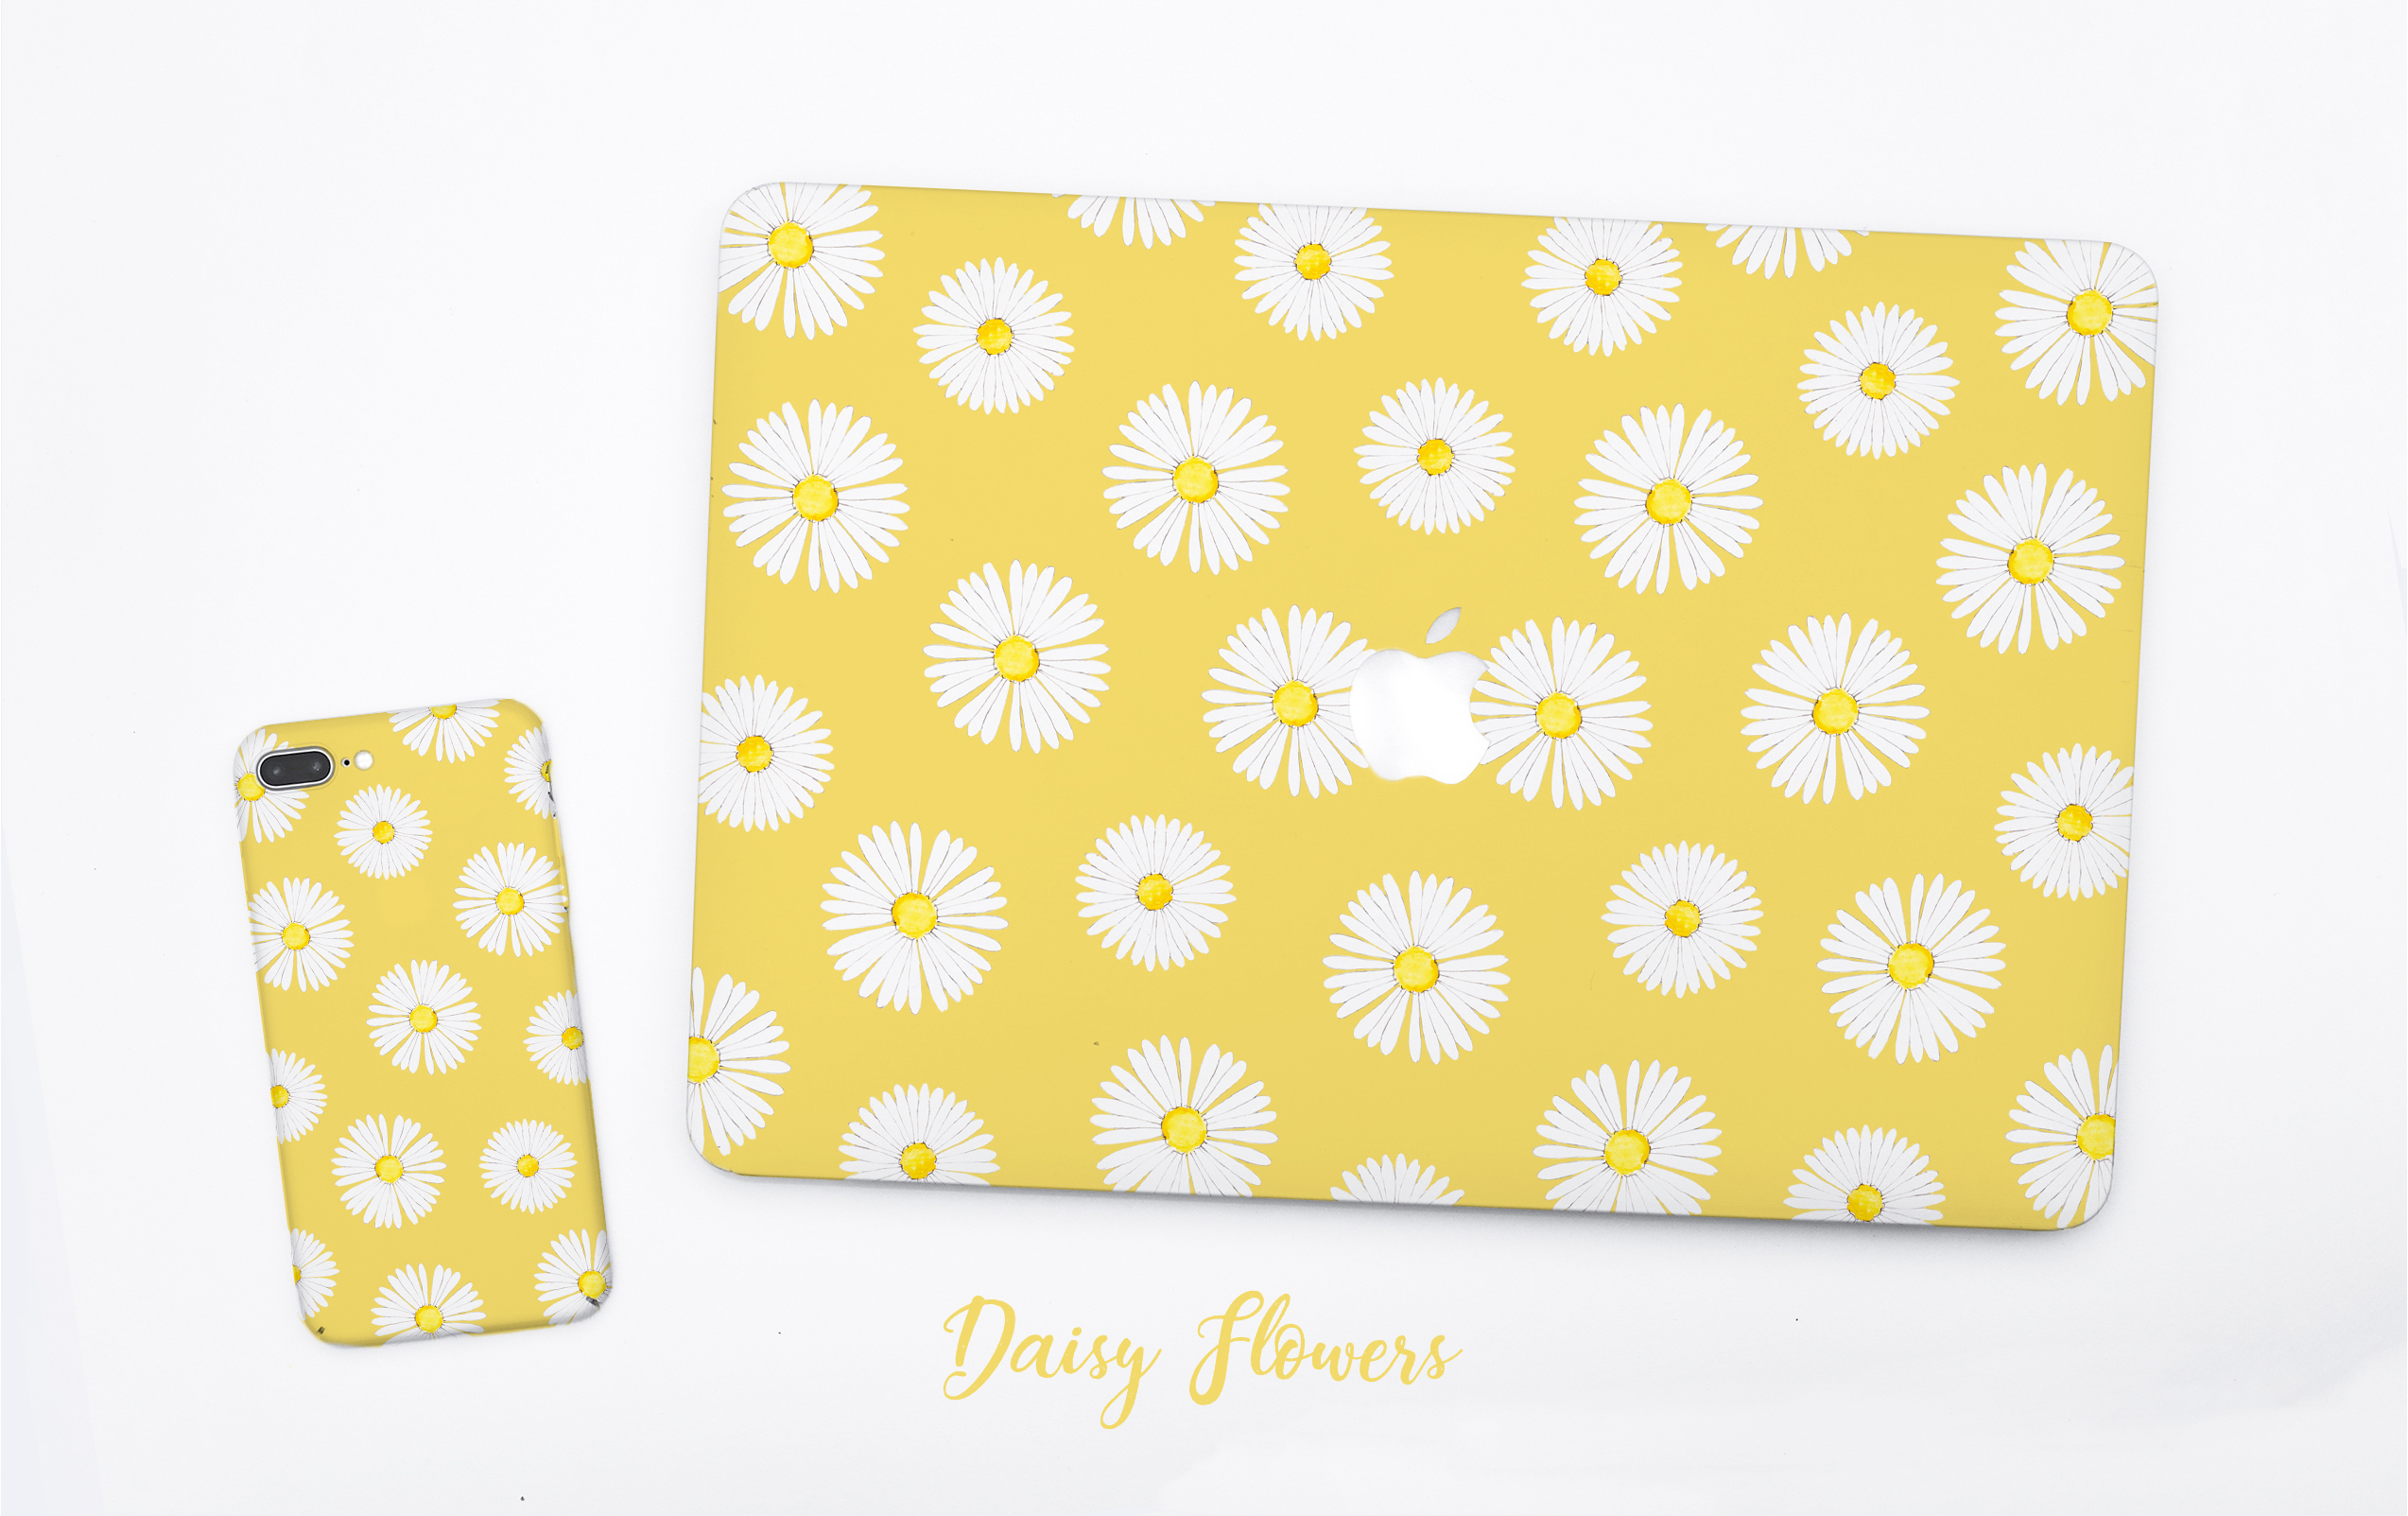 Daisy flowers MacBook  and phone case